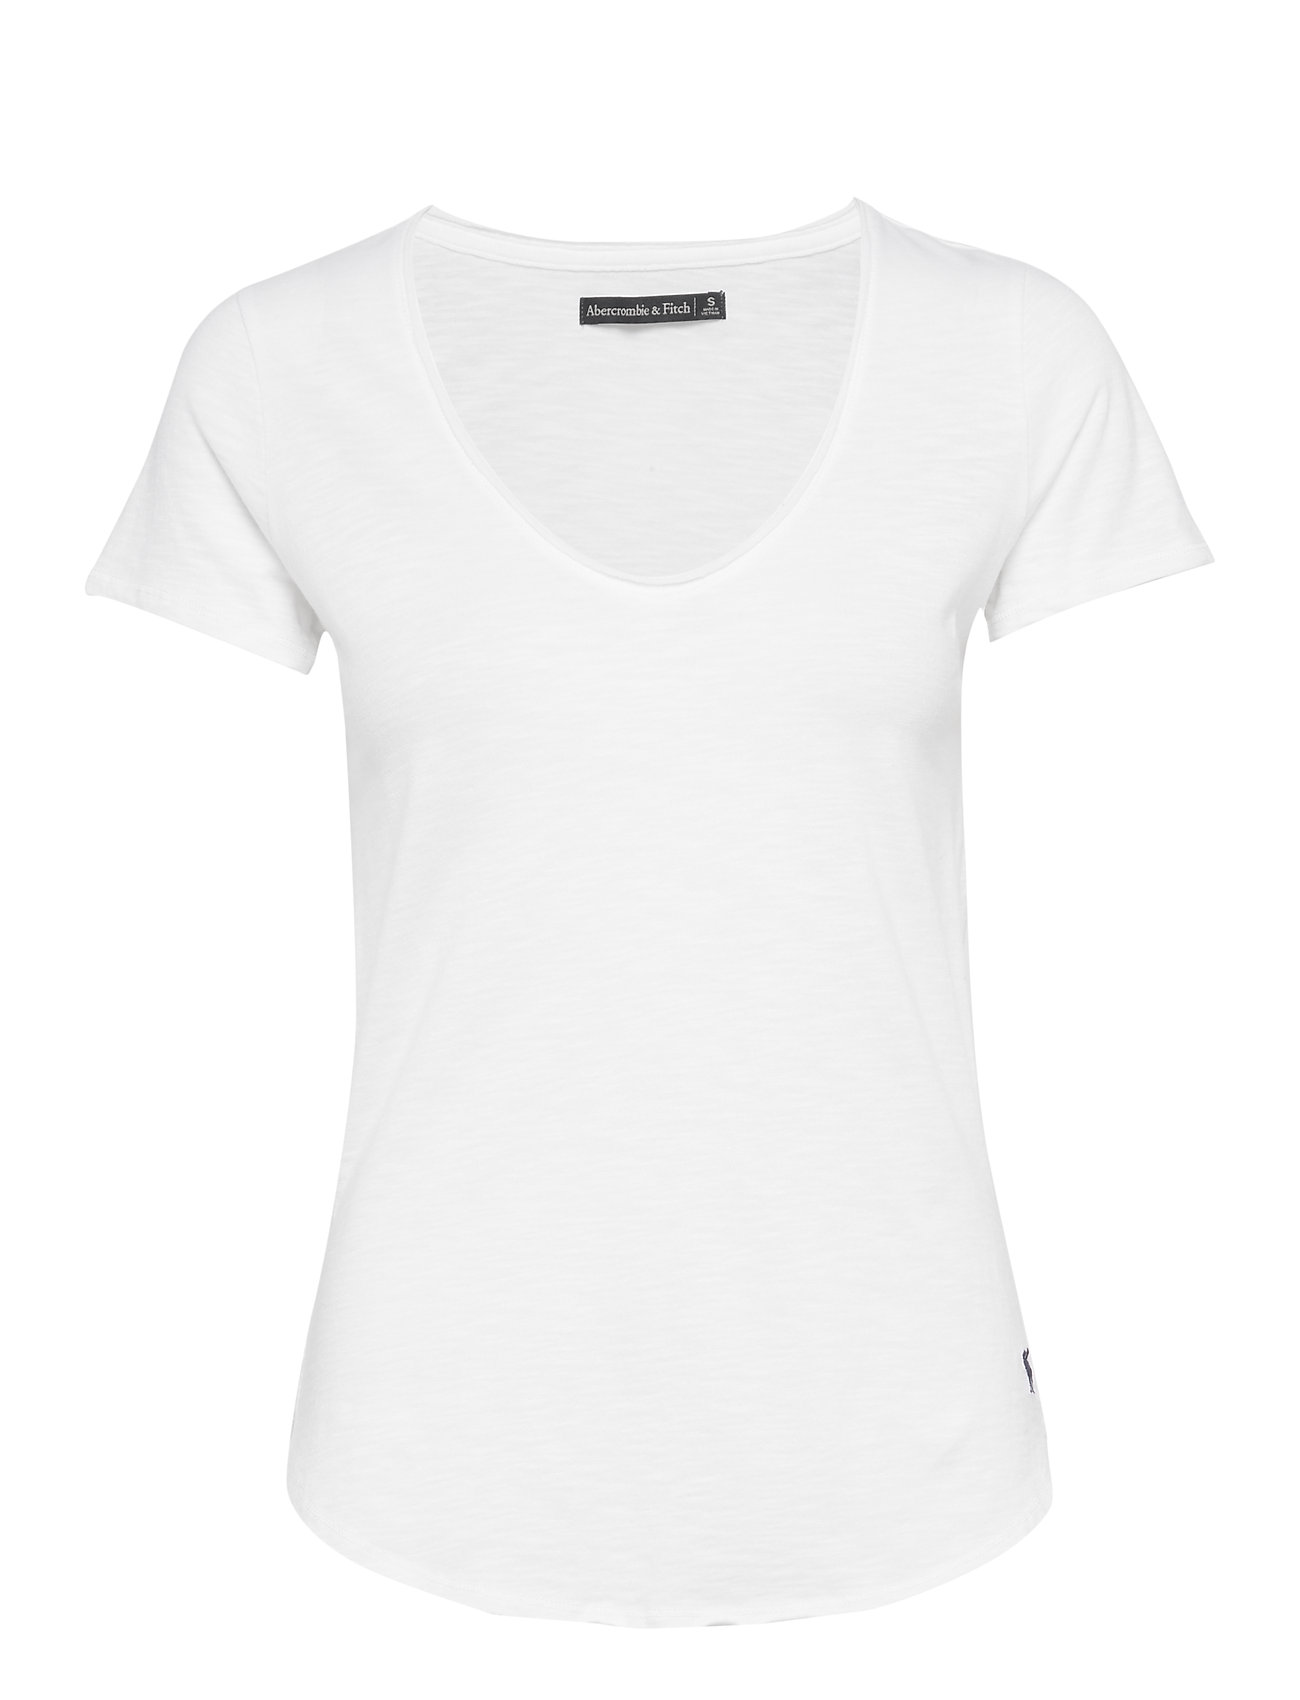 Abercrombie & Fitch Tee - WHITE